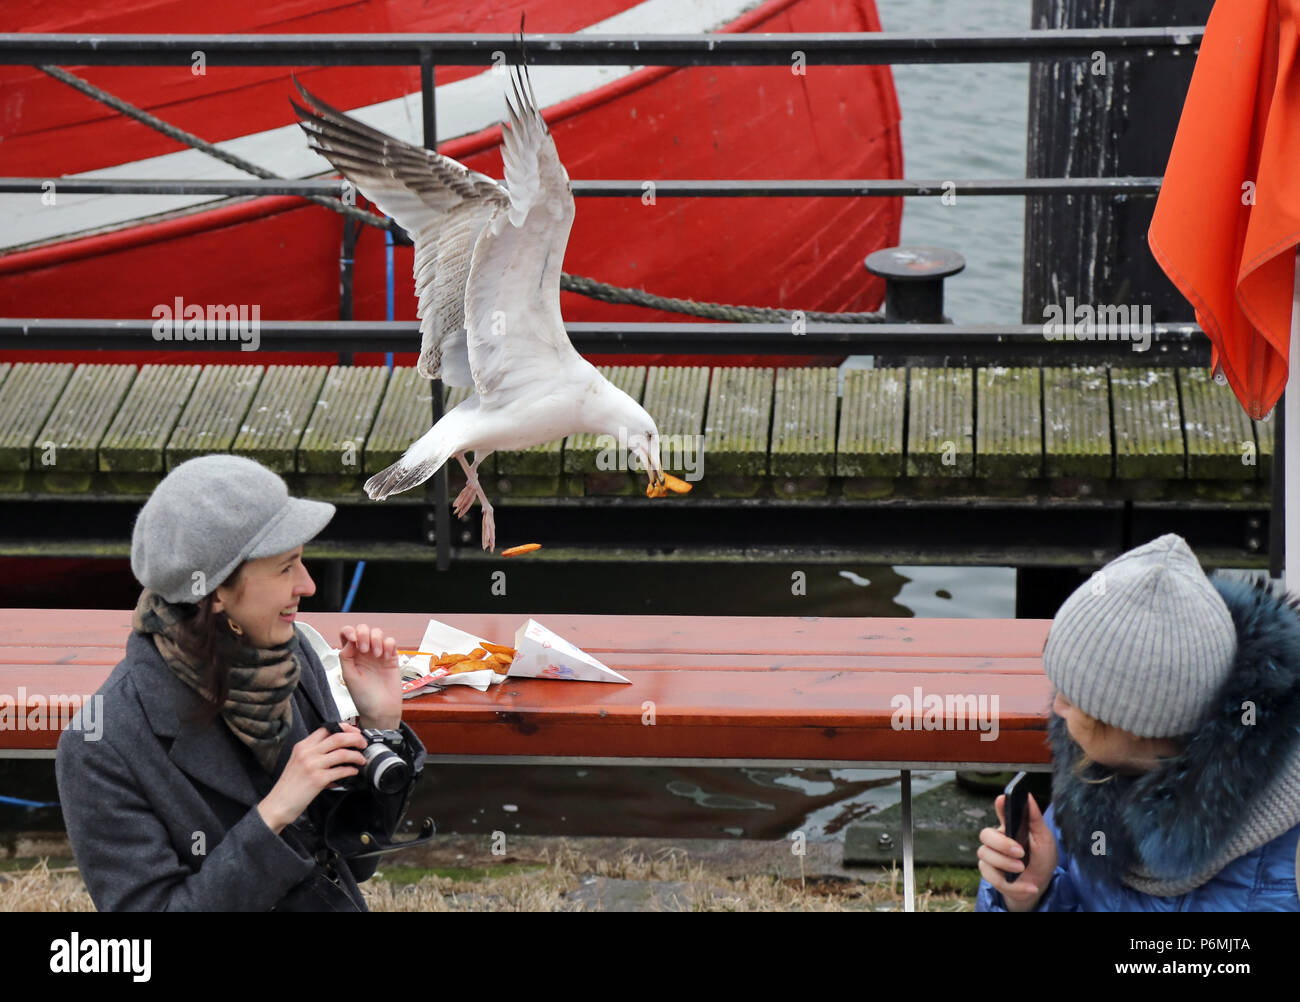 Warnemuende, Silbermoewe grabs some French fries in the flight - Stock Image